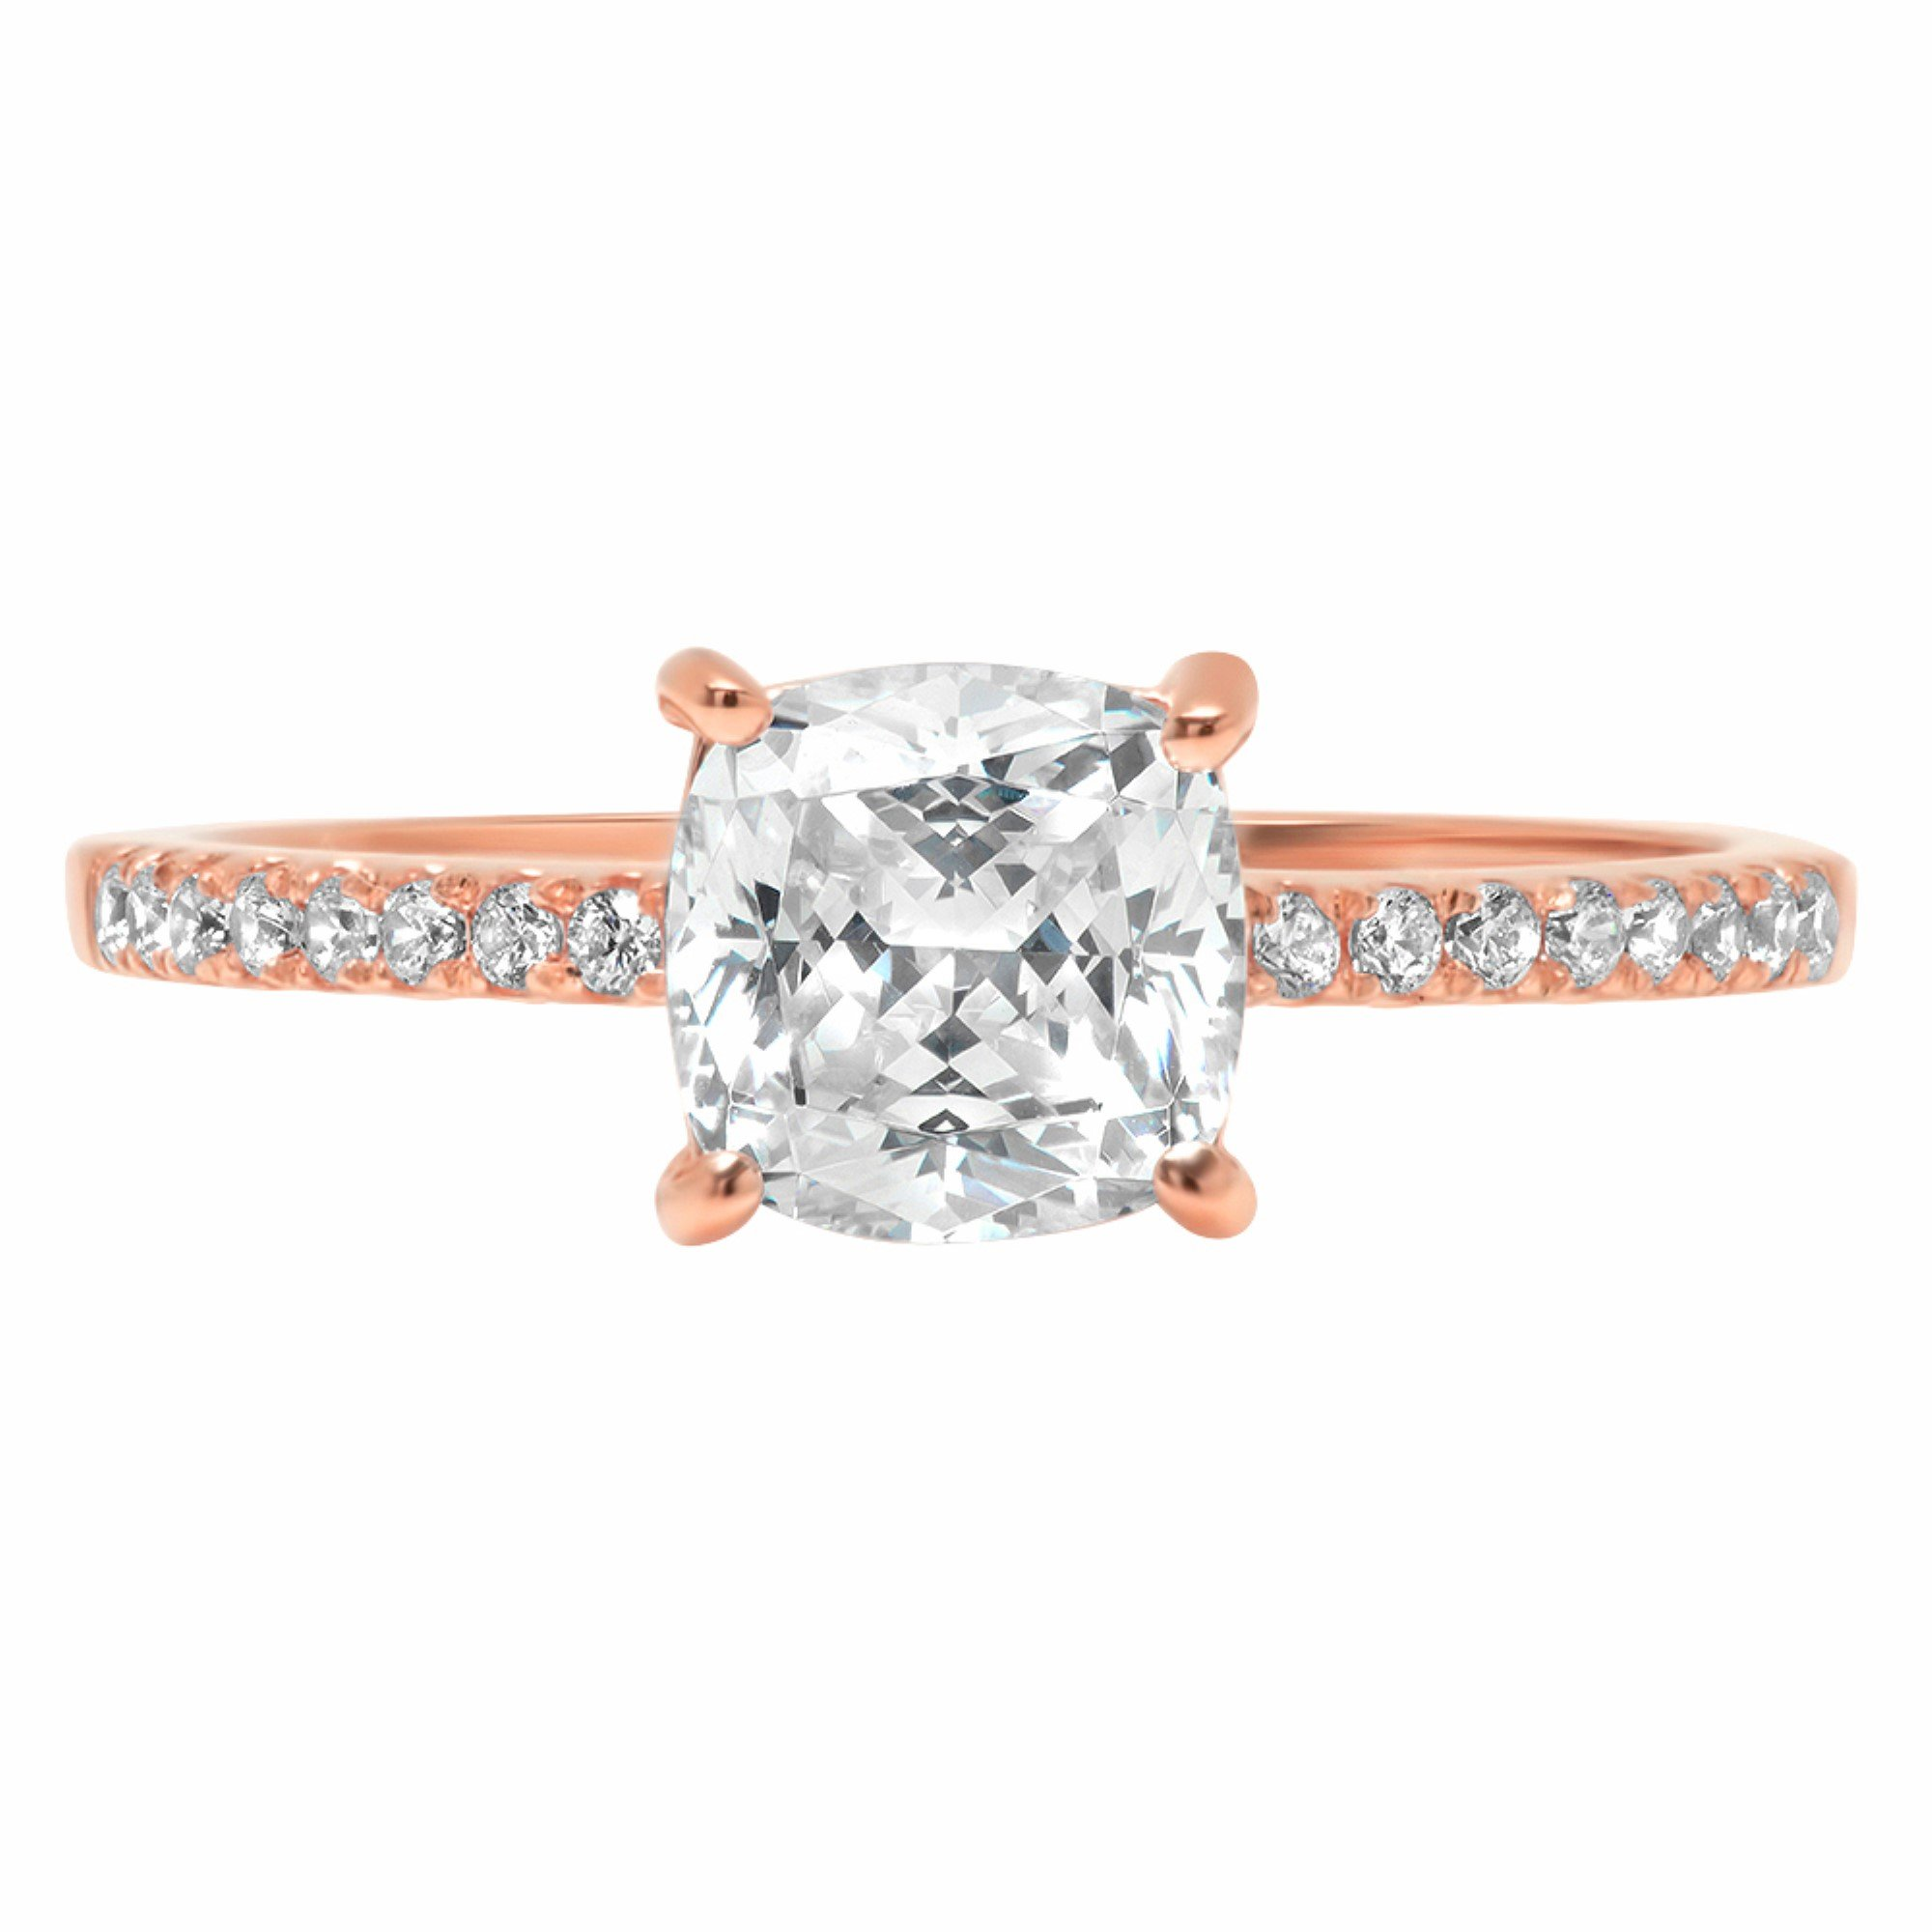 Cushion Round Cut Classic Solitaire Designer Wedding Bridal Statement Anniversary Engagement Promise Accent Solitaire Ring 14k Rose Gold, 1.86ct, 9 by Clara Pucci